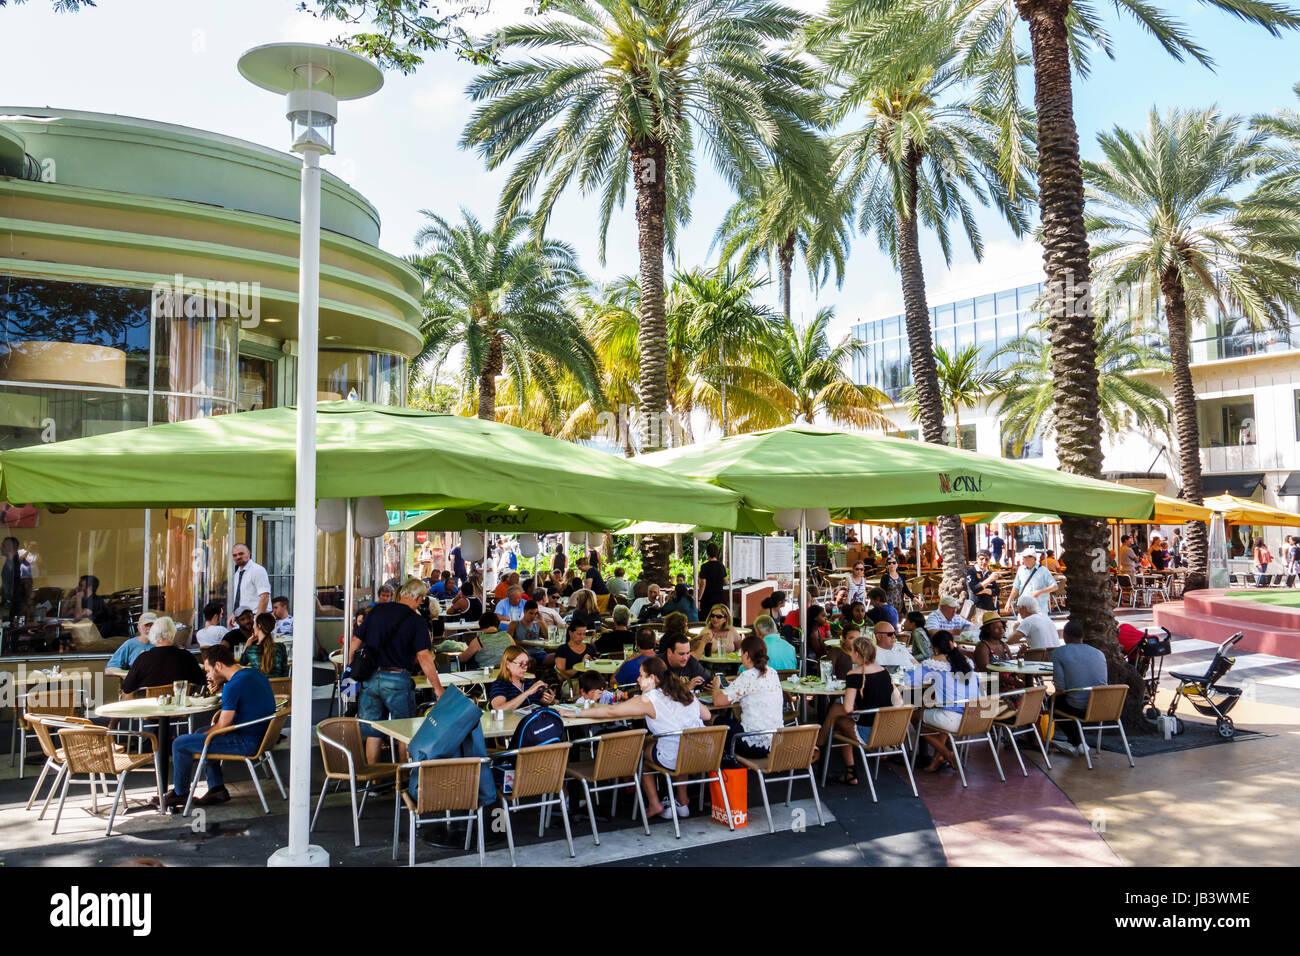 Miami Beach Florida Lincoln Road pedestrian mall Nexxt Cafe restaurant outdoor dining al fresco umbrellas crowded - Stock Image